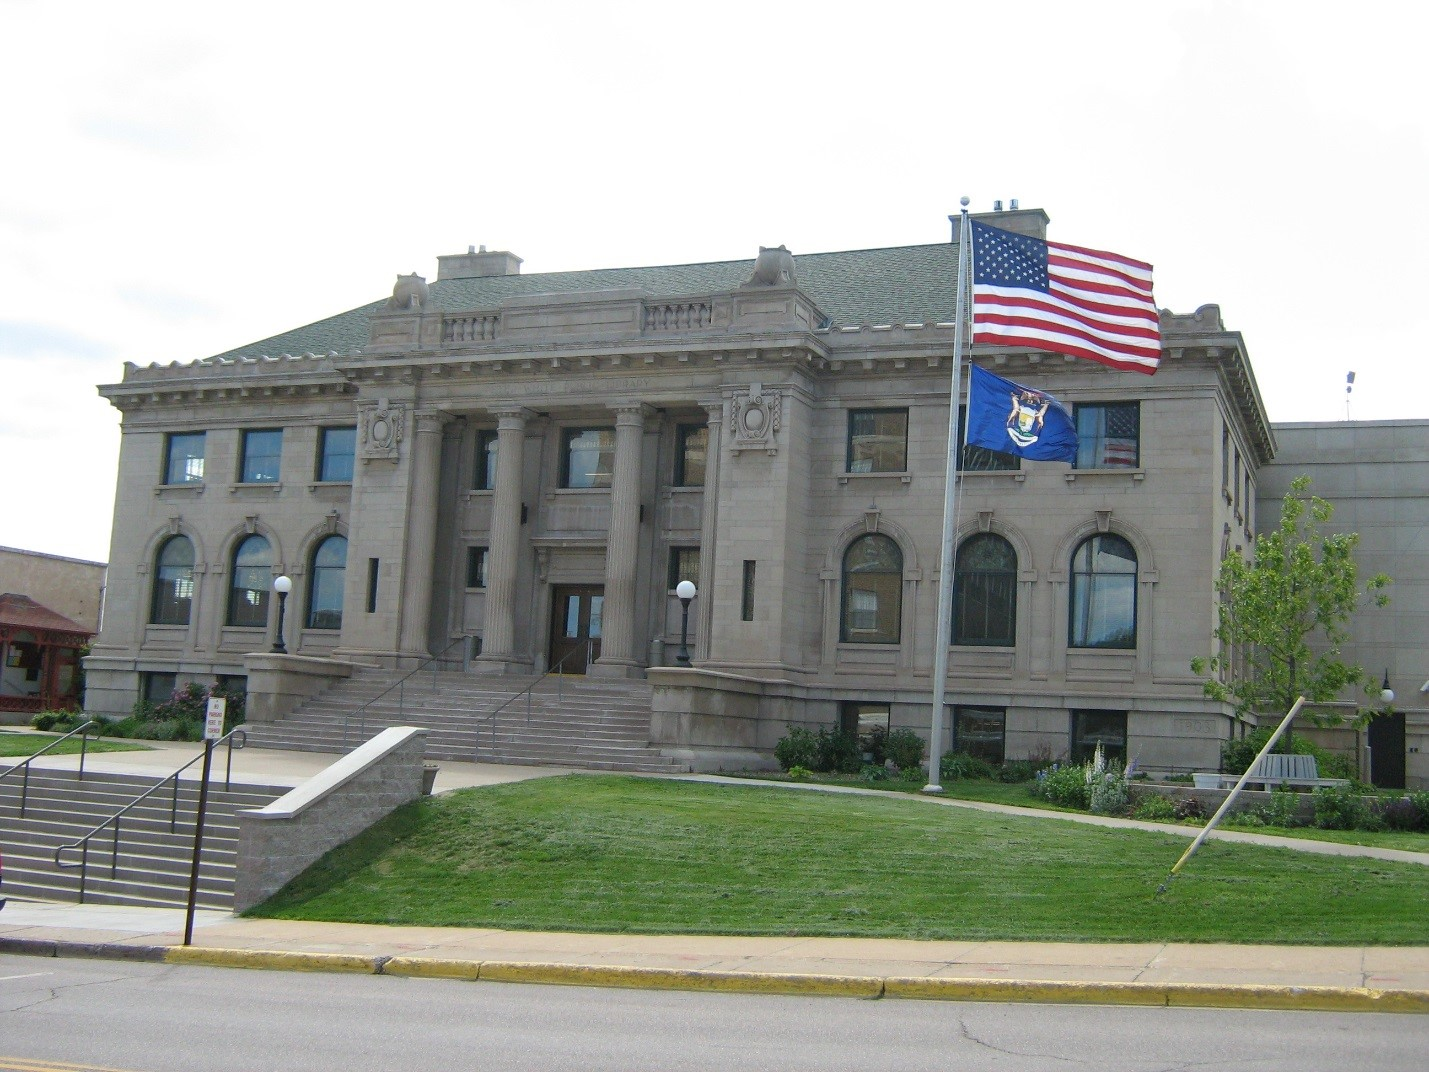 The Front part of Peter White Public Library